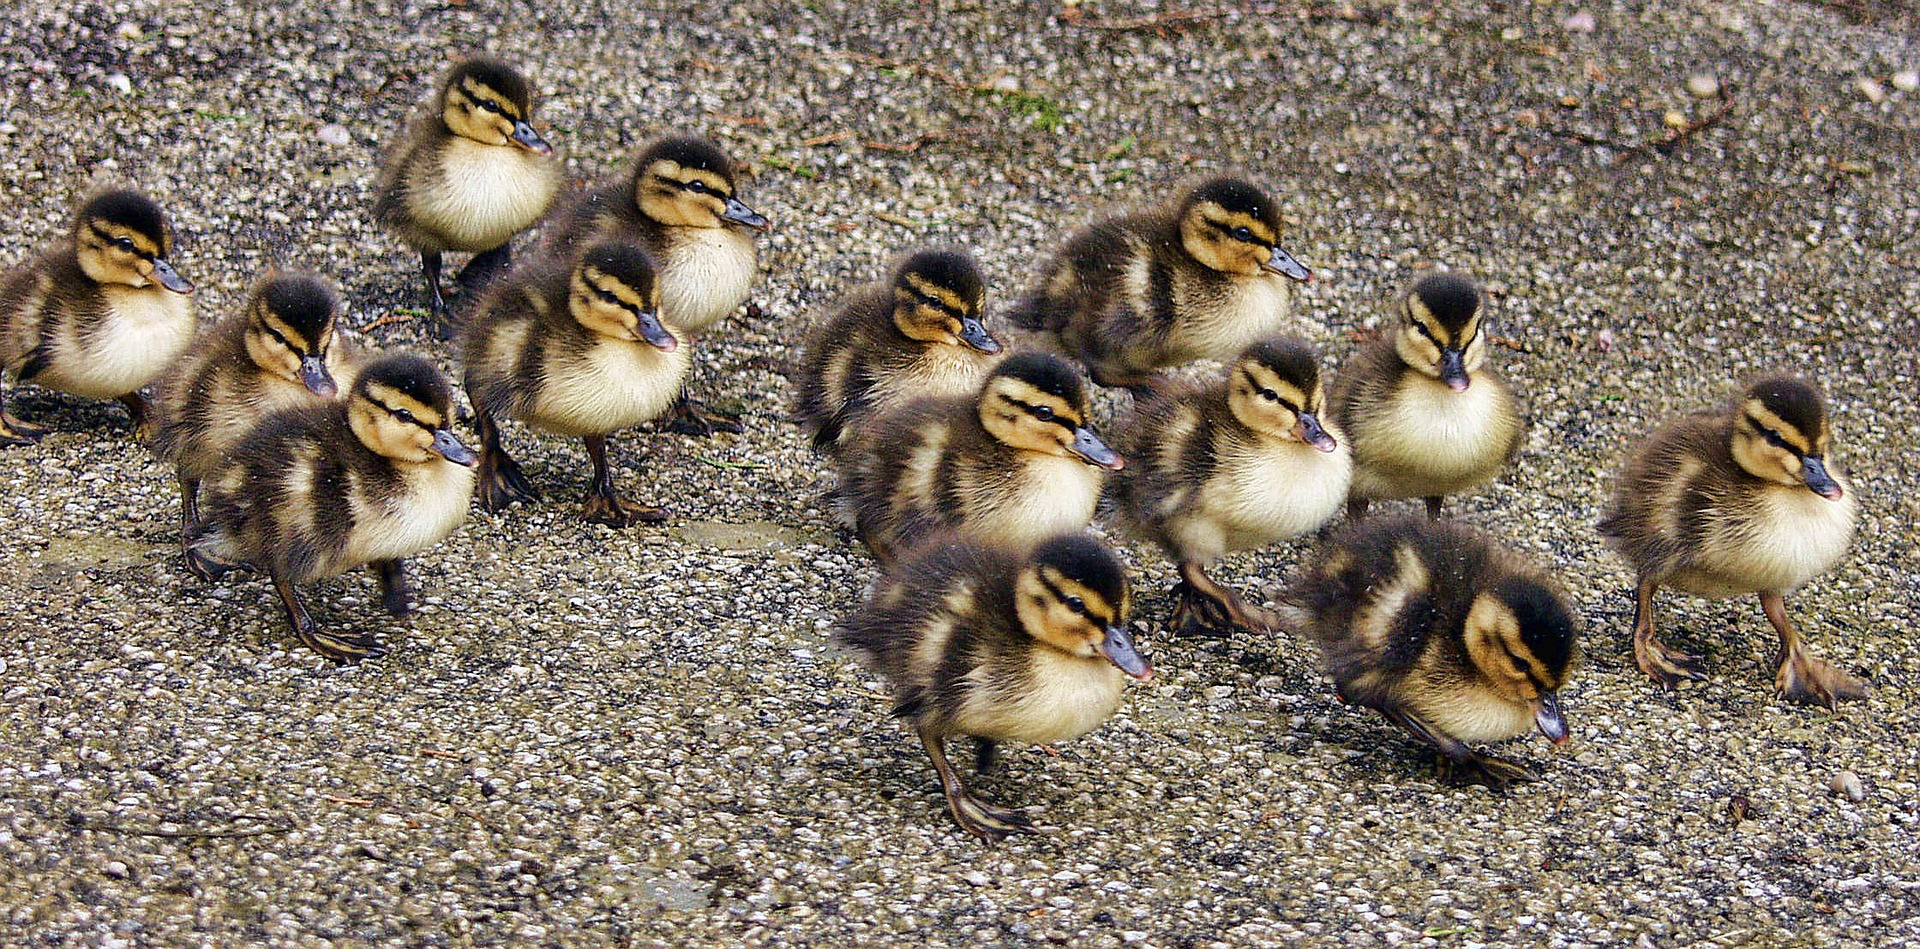 Baby Ducks Guide 5 Things You Must Know Iduckn